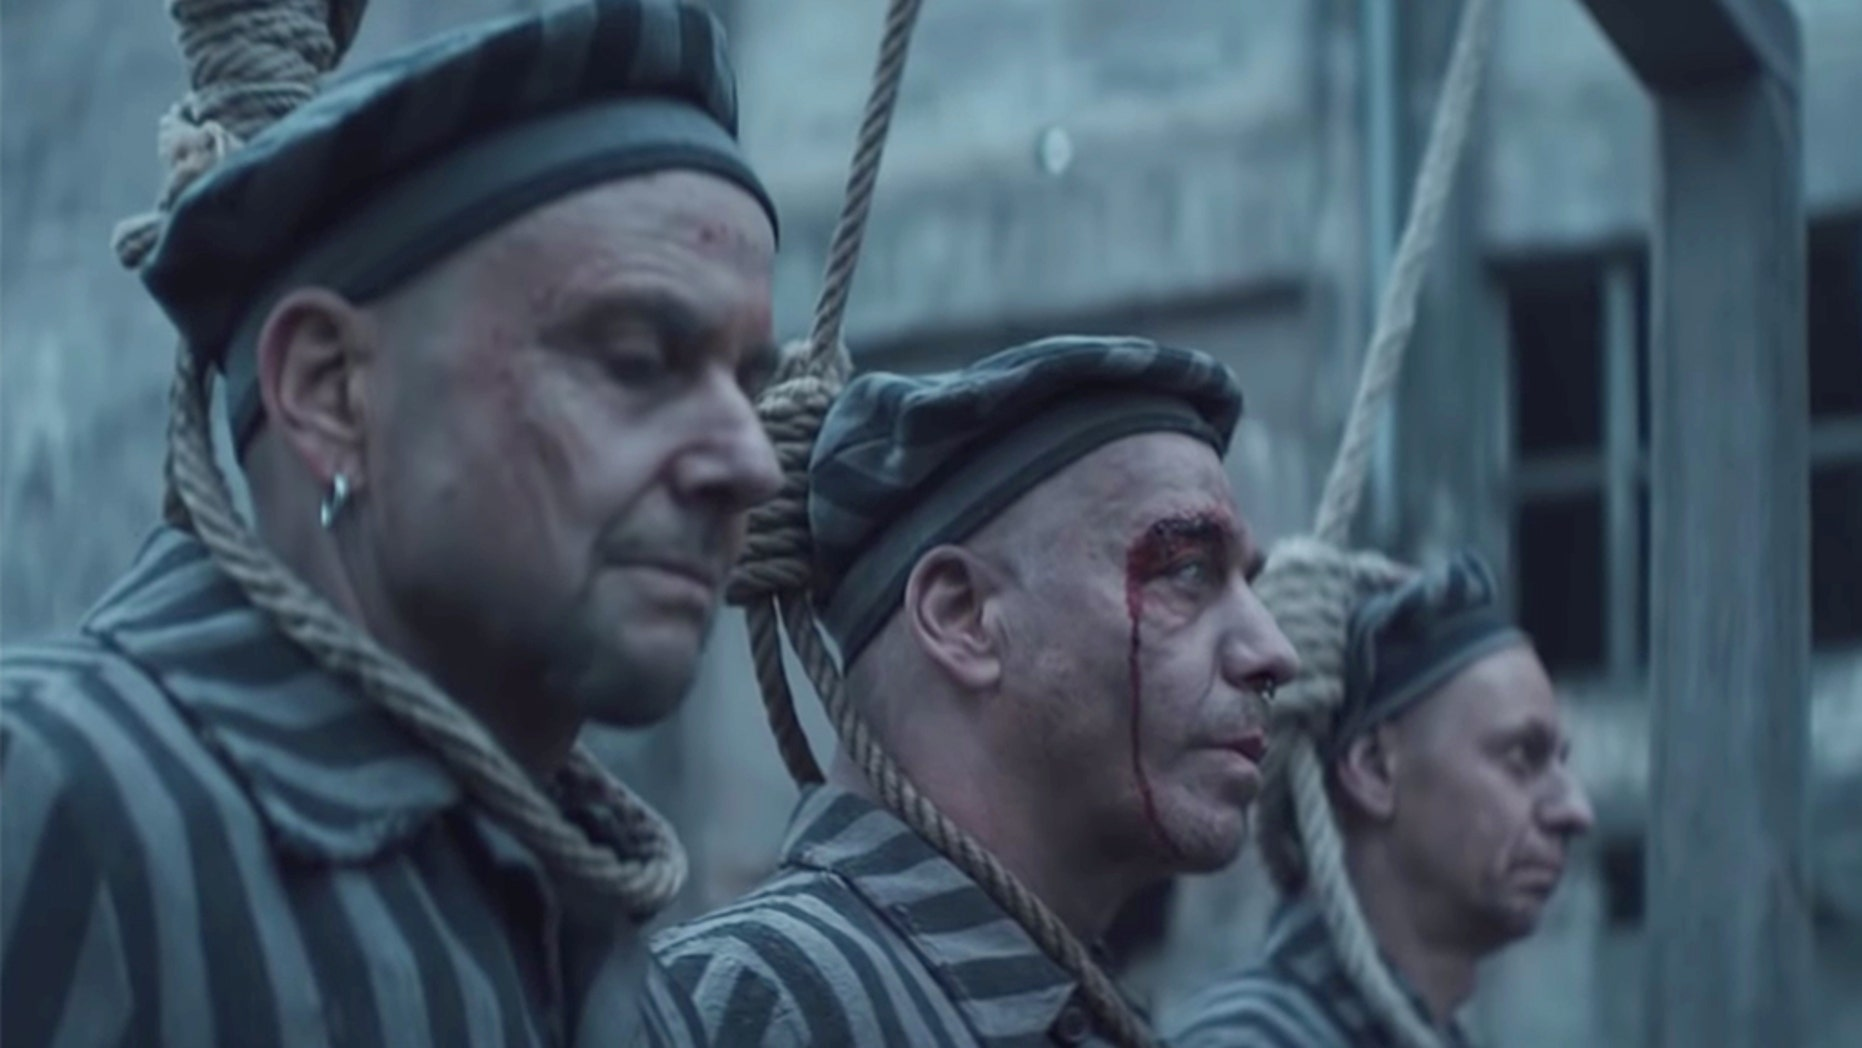 The German hard rock band Rammstein sparked criticism when they released a video promoting the new single